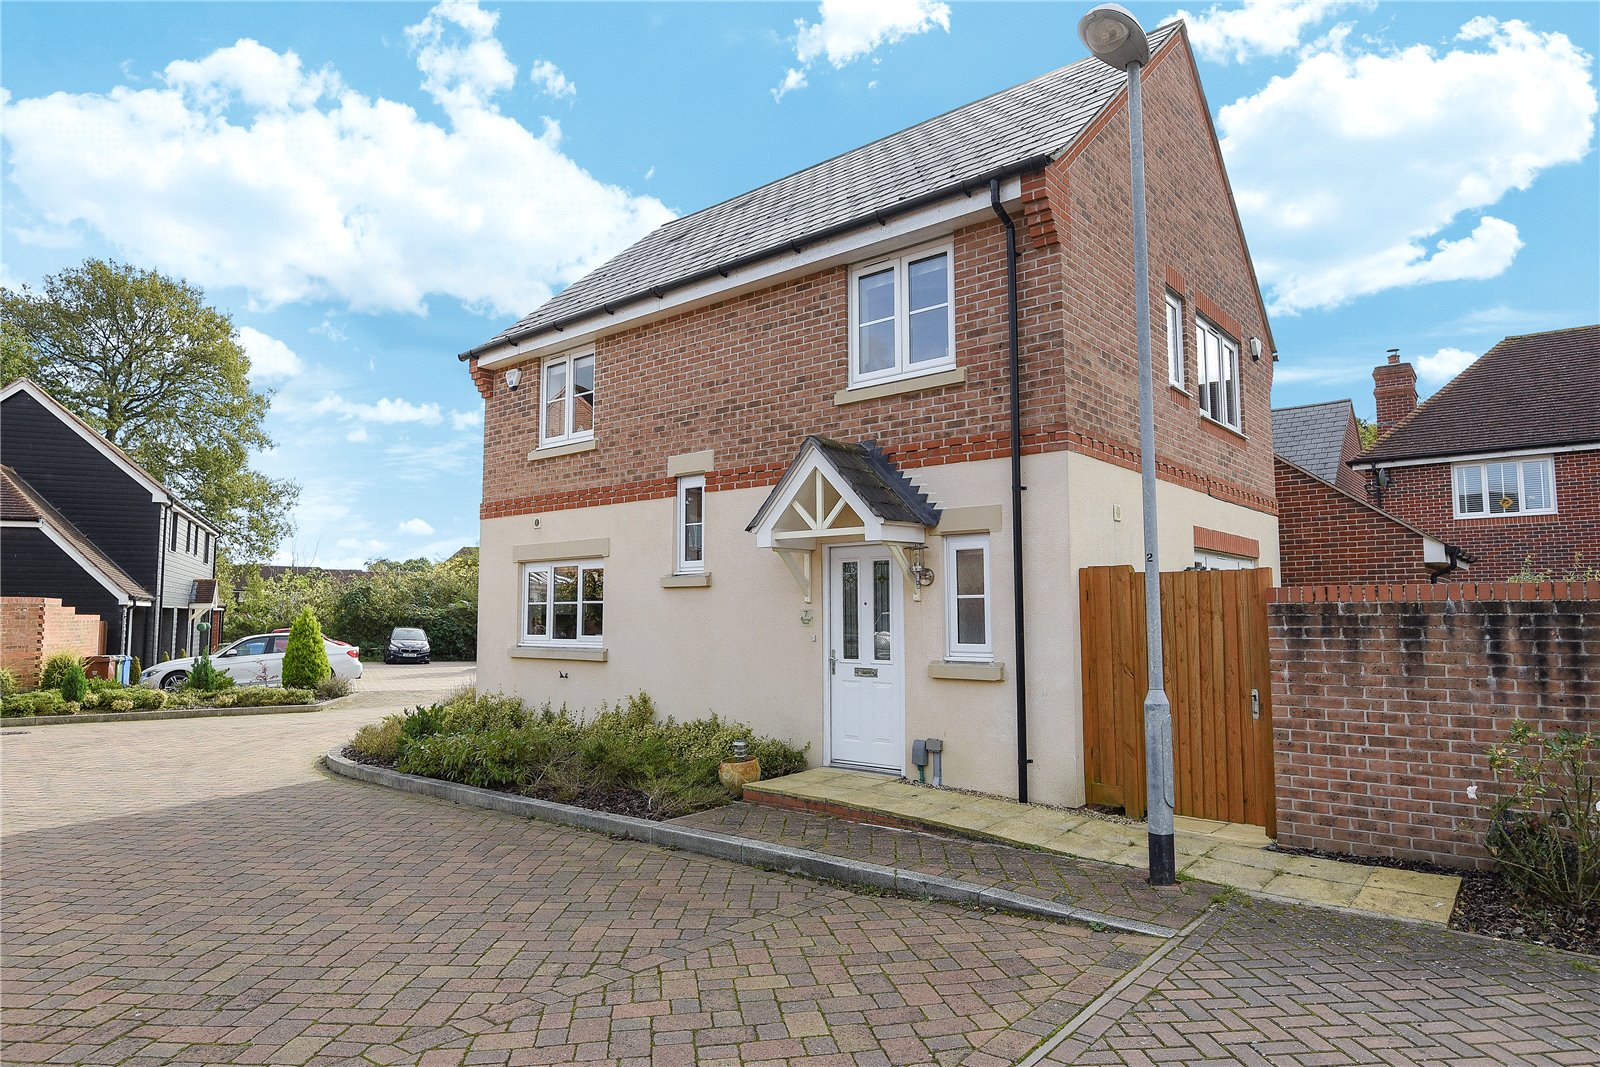 4 Bedrooms Detached House for sale in Starlings Roost, Bracknell, Berkshire, RG12